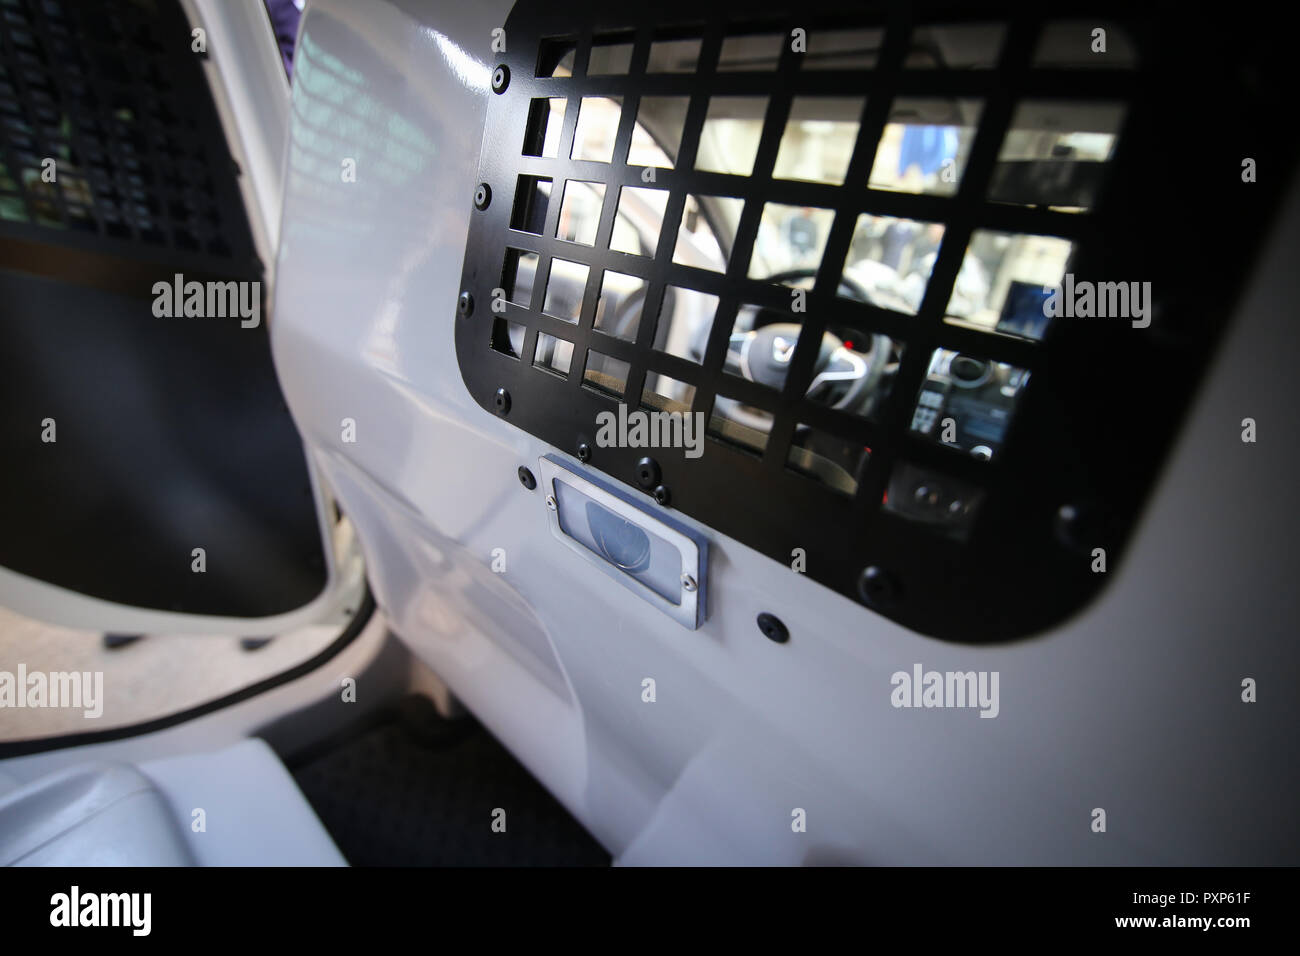 Details from the interior of a Romanian police vehicle, with bars on windows and a monitoring video camera in the back - Stock Image